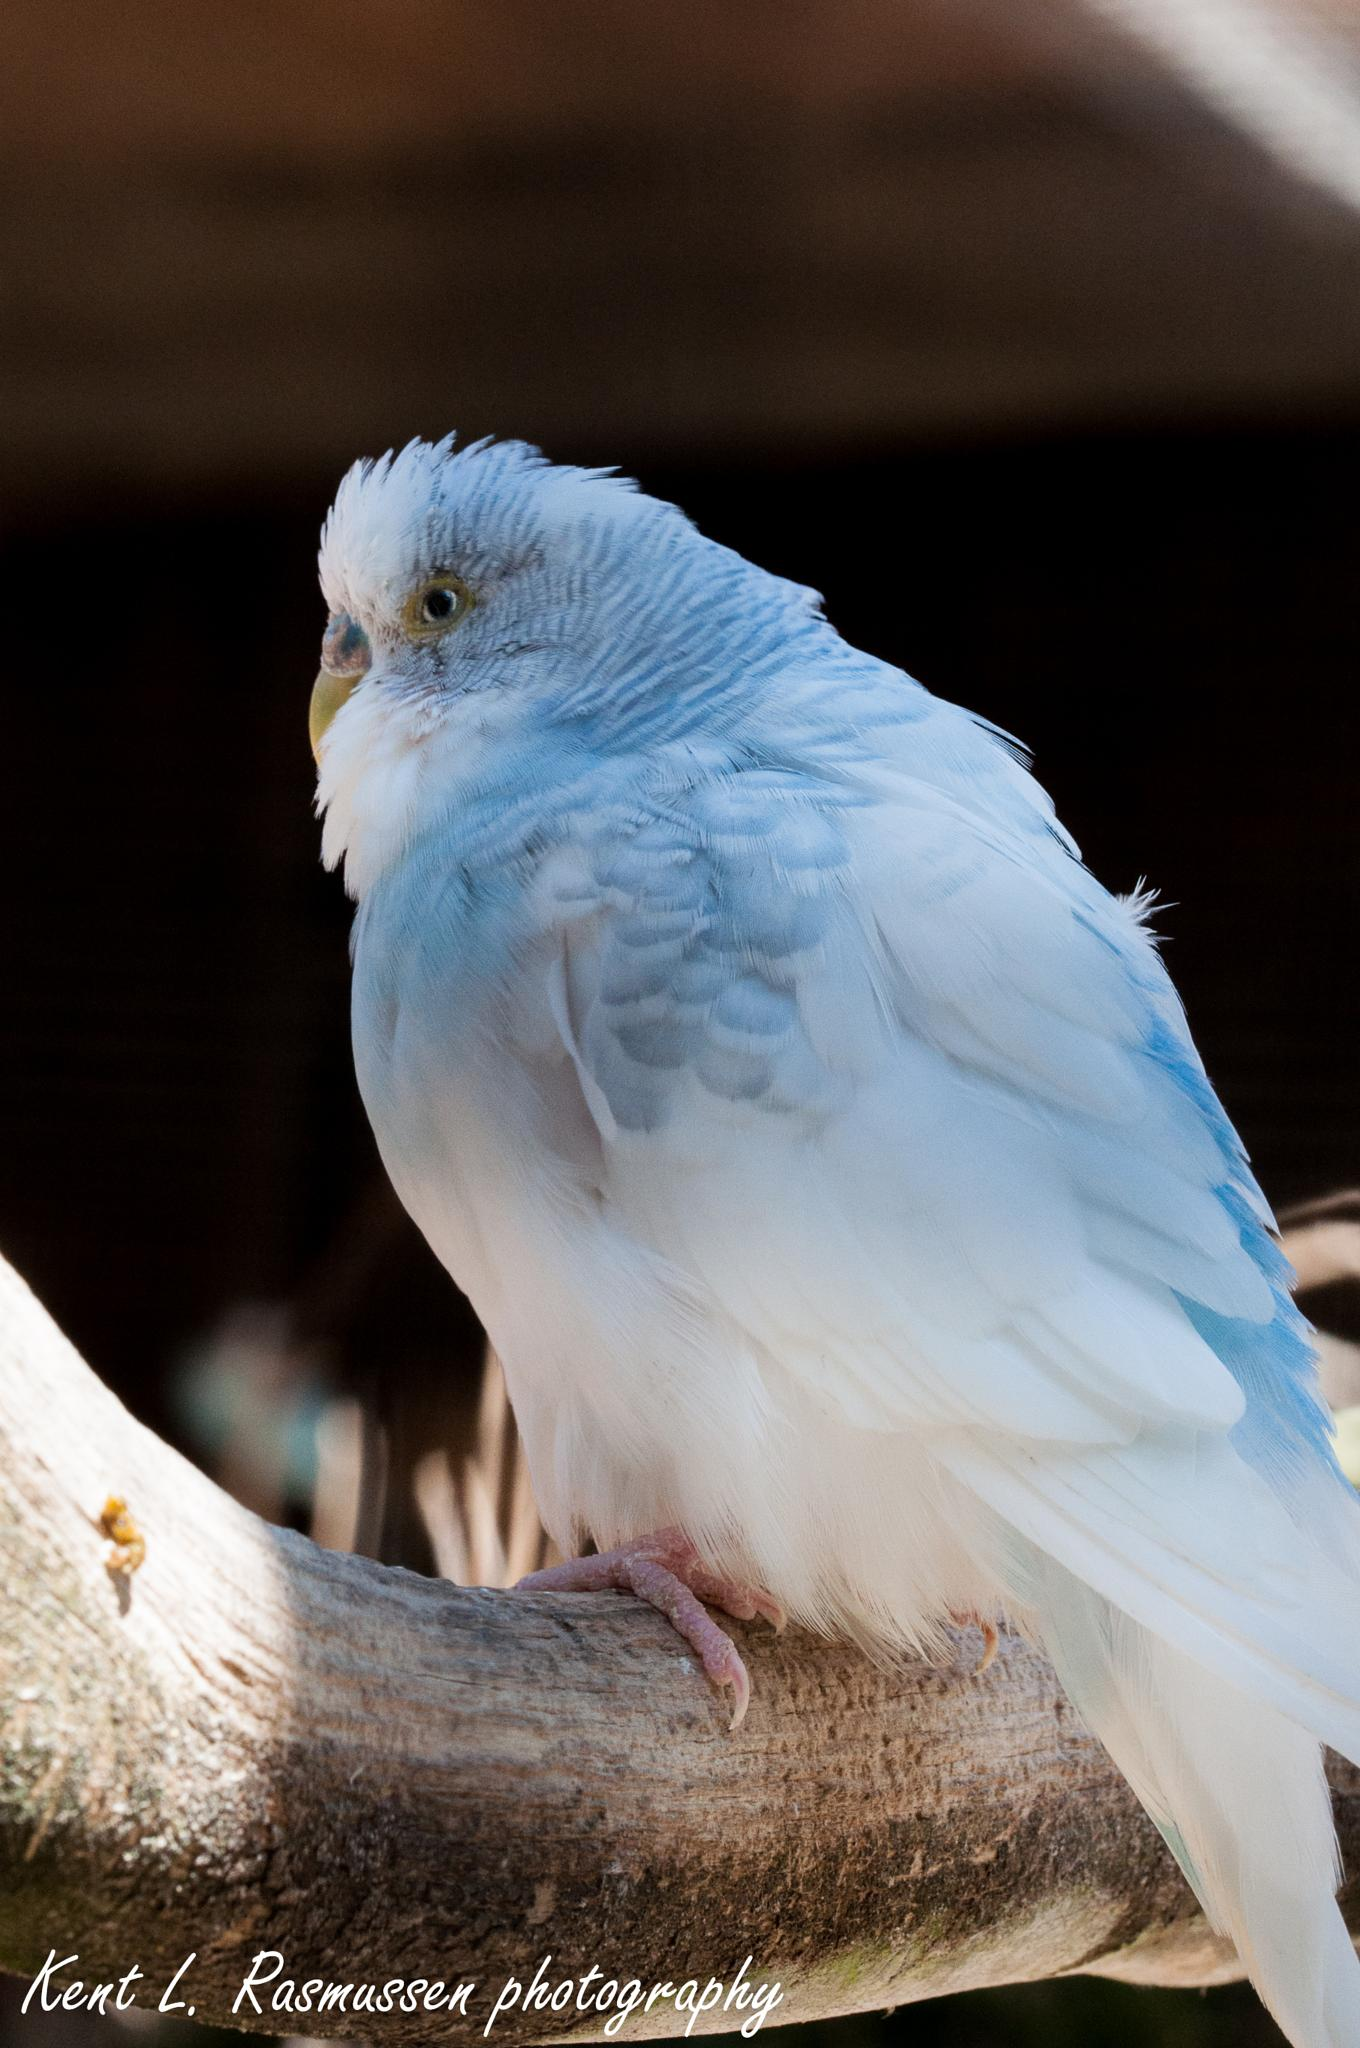 White & blue budgie by Kent L. Rasmussen